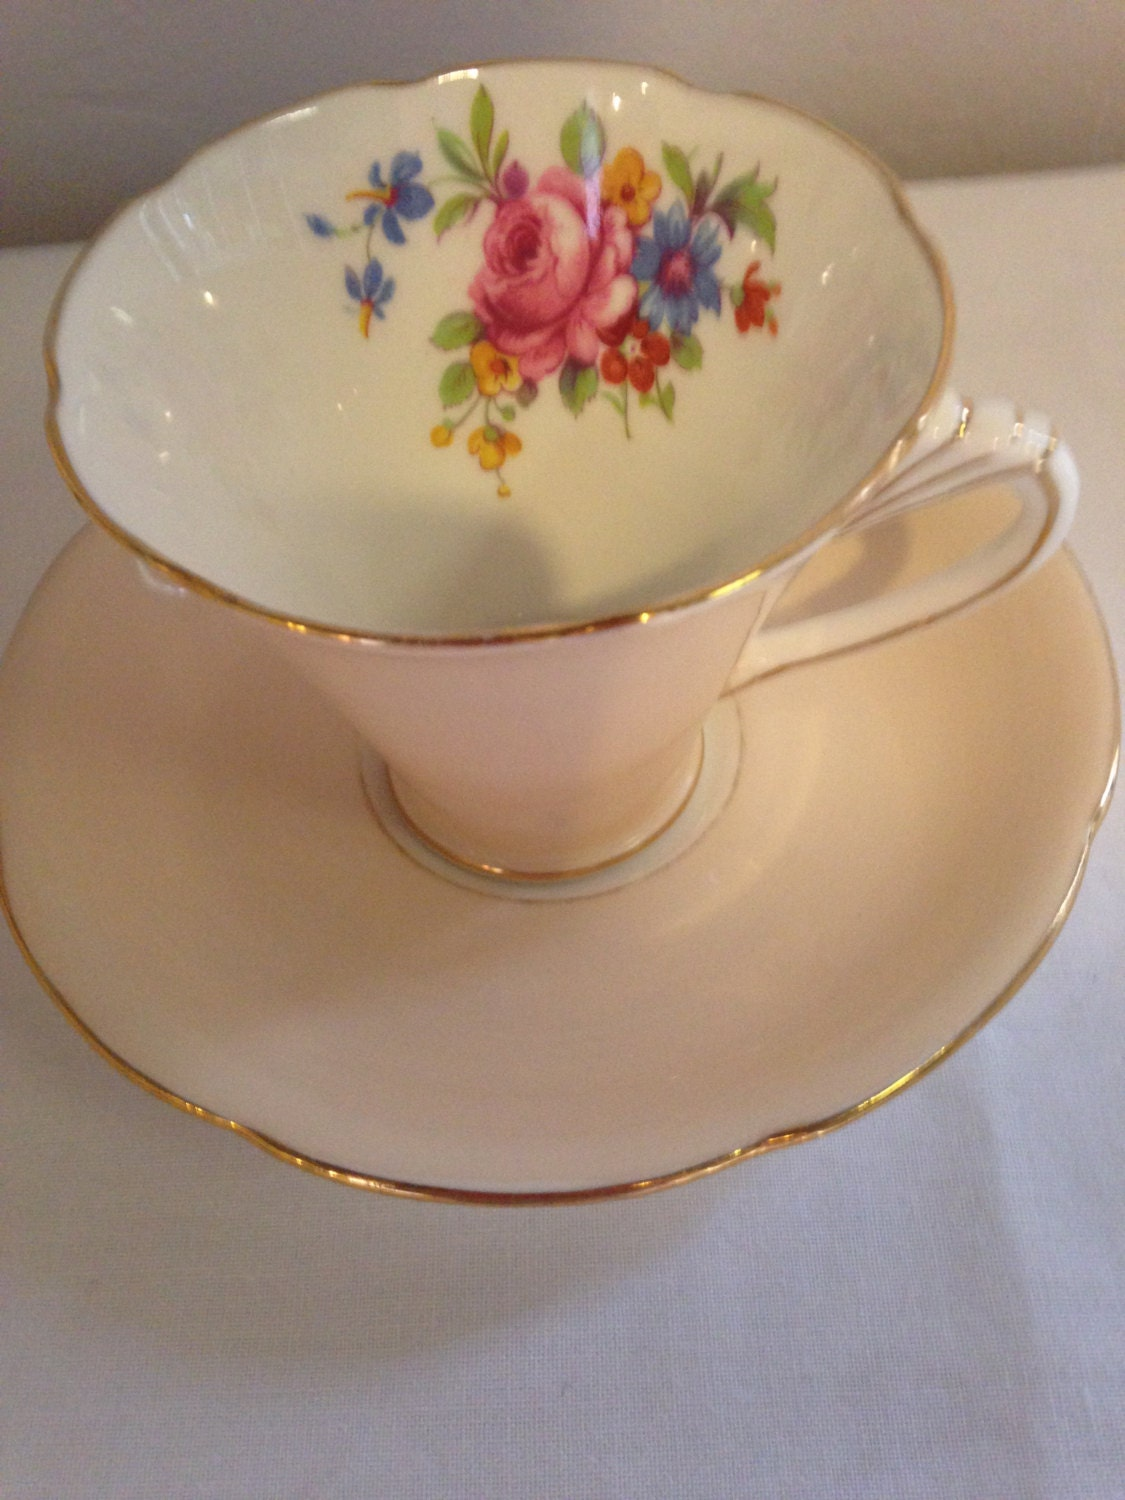 grafton china made in england 1930s tea cup and saucer. Black Bedroom Furniture Sets. Home Design Ideas